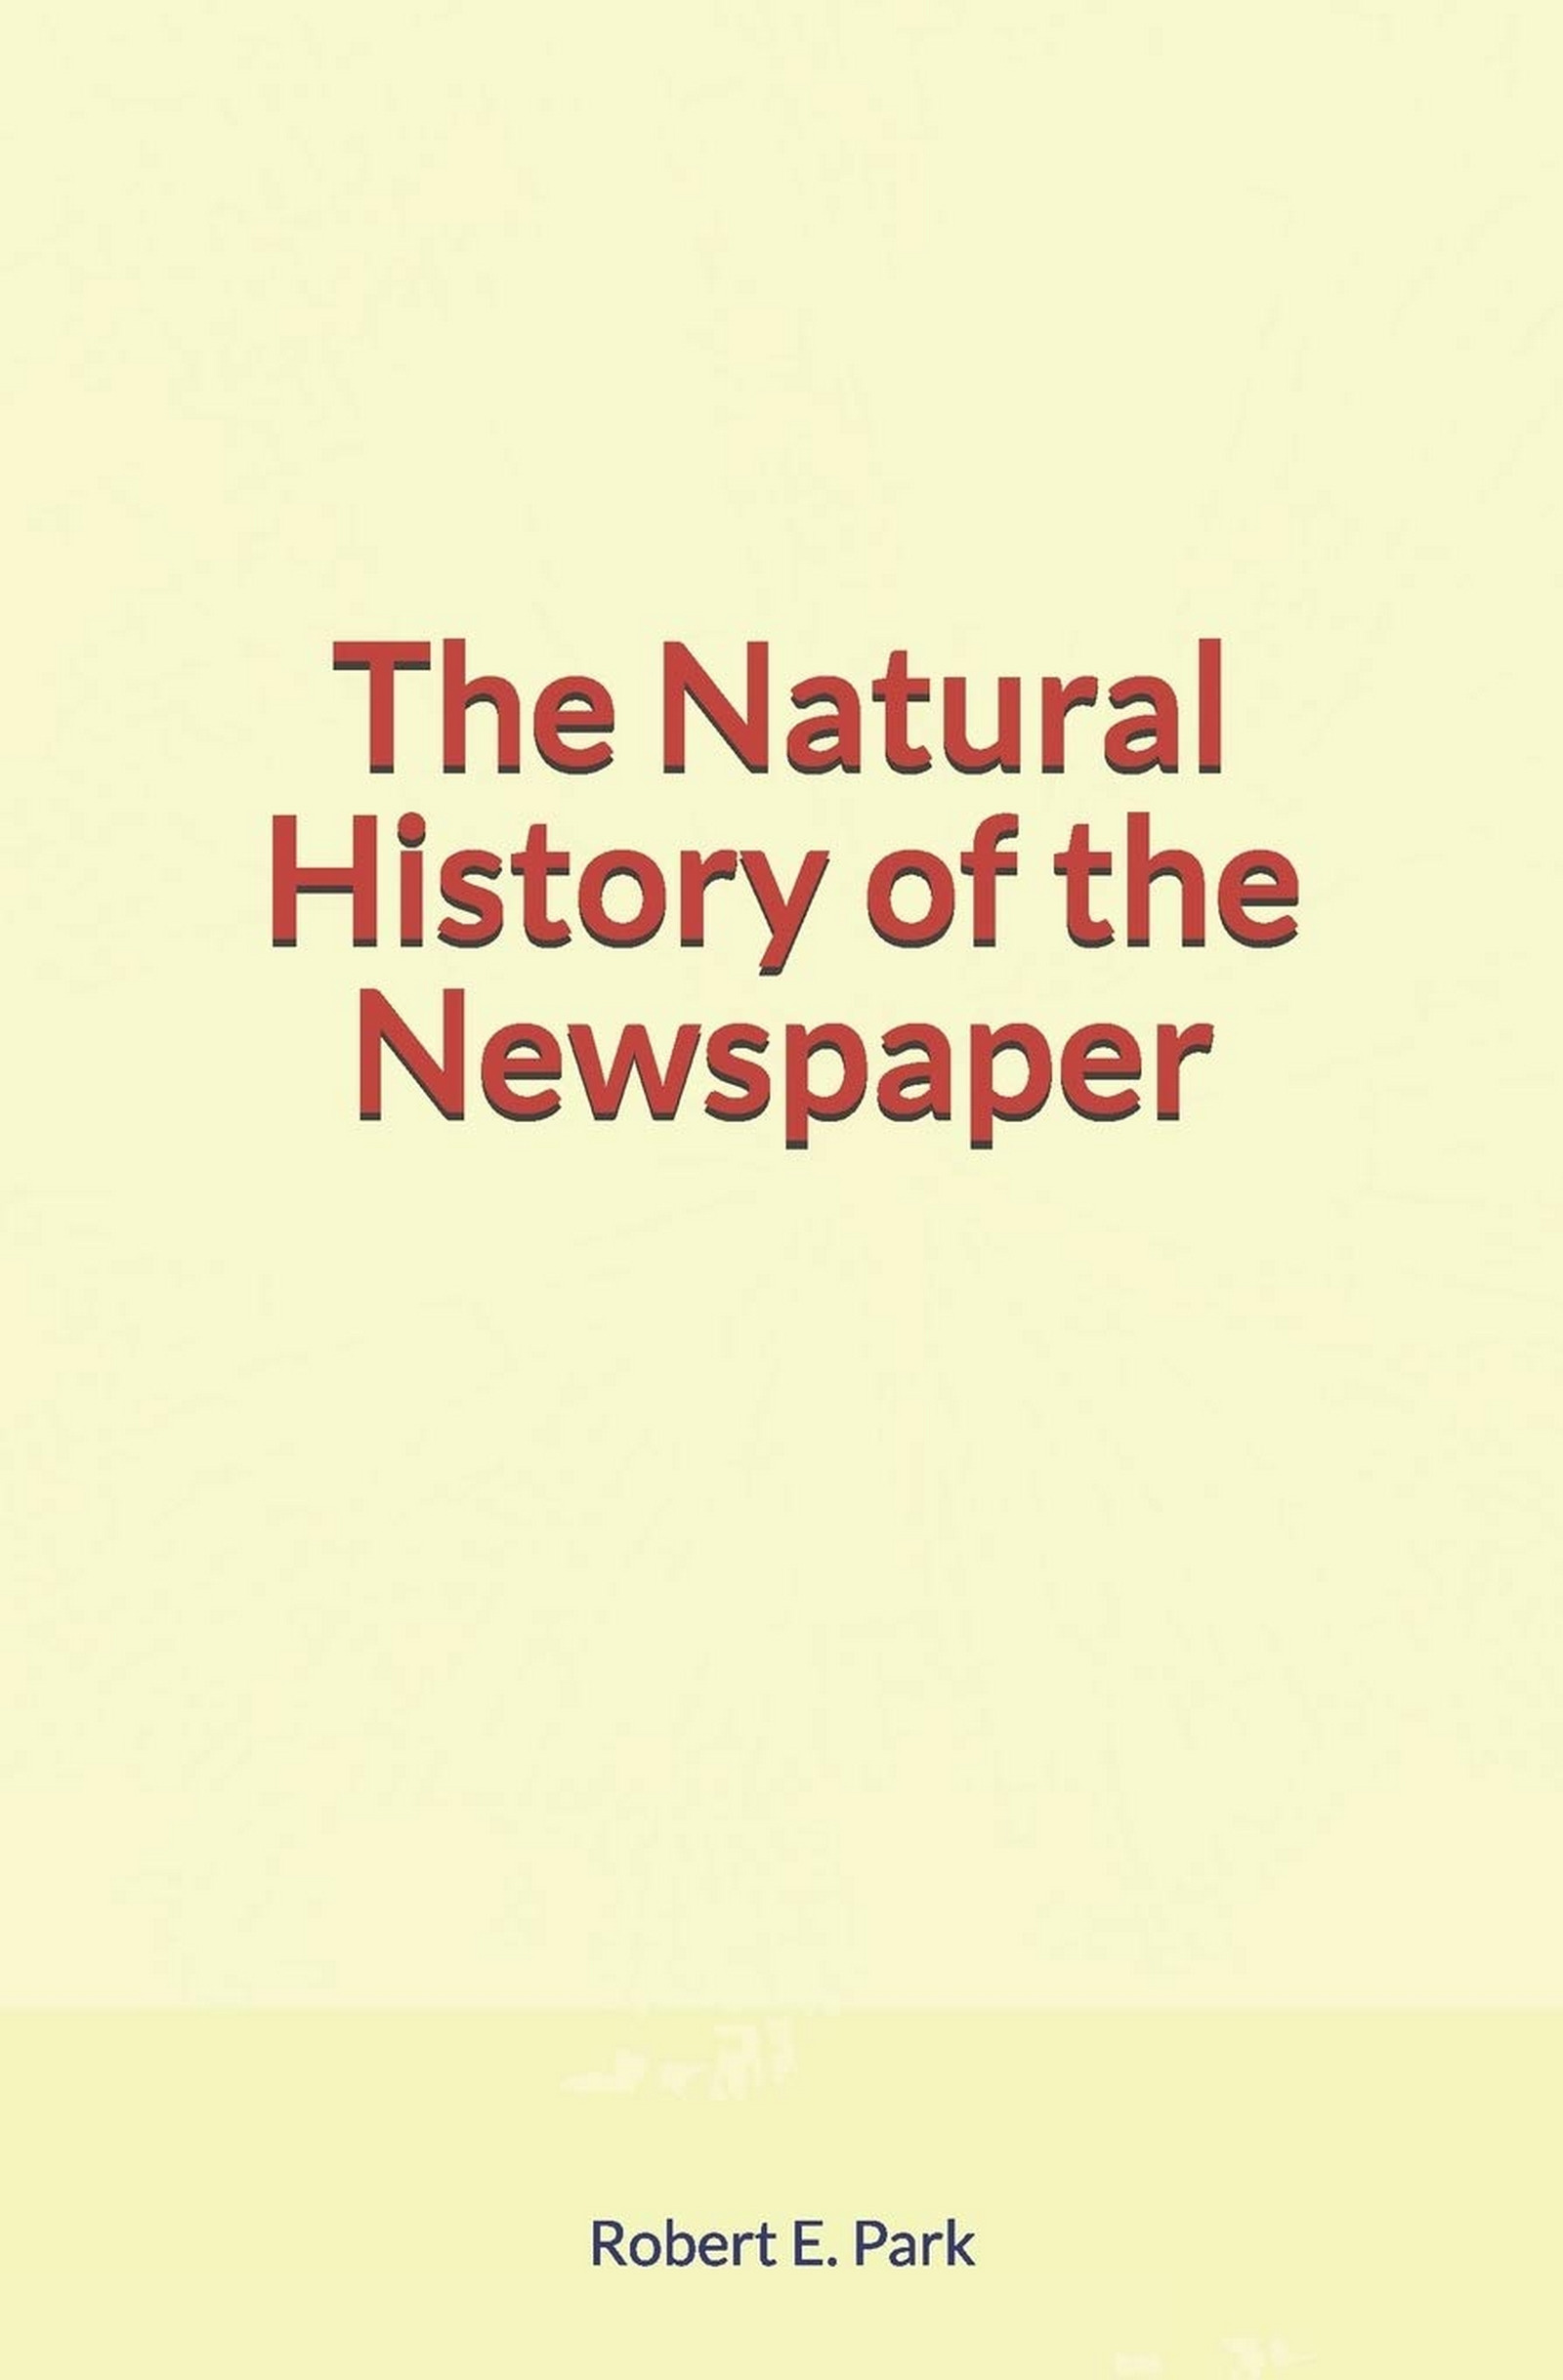 The Natural History of the Newspaper